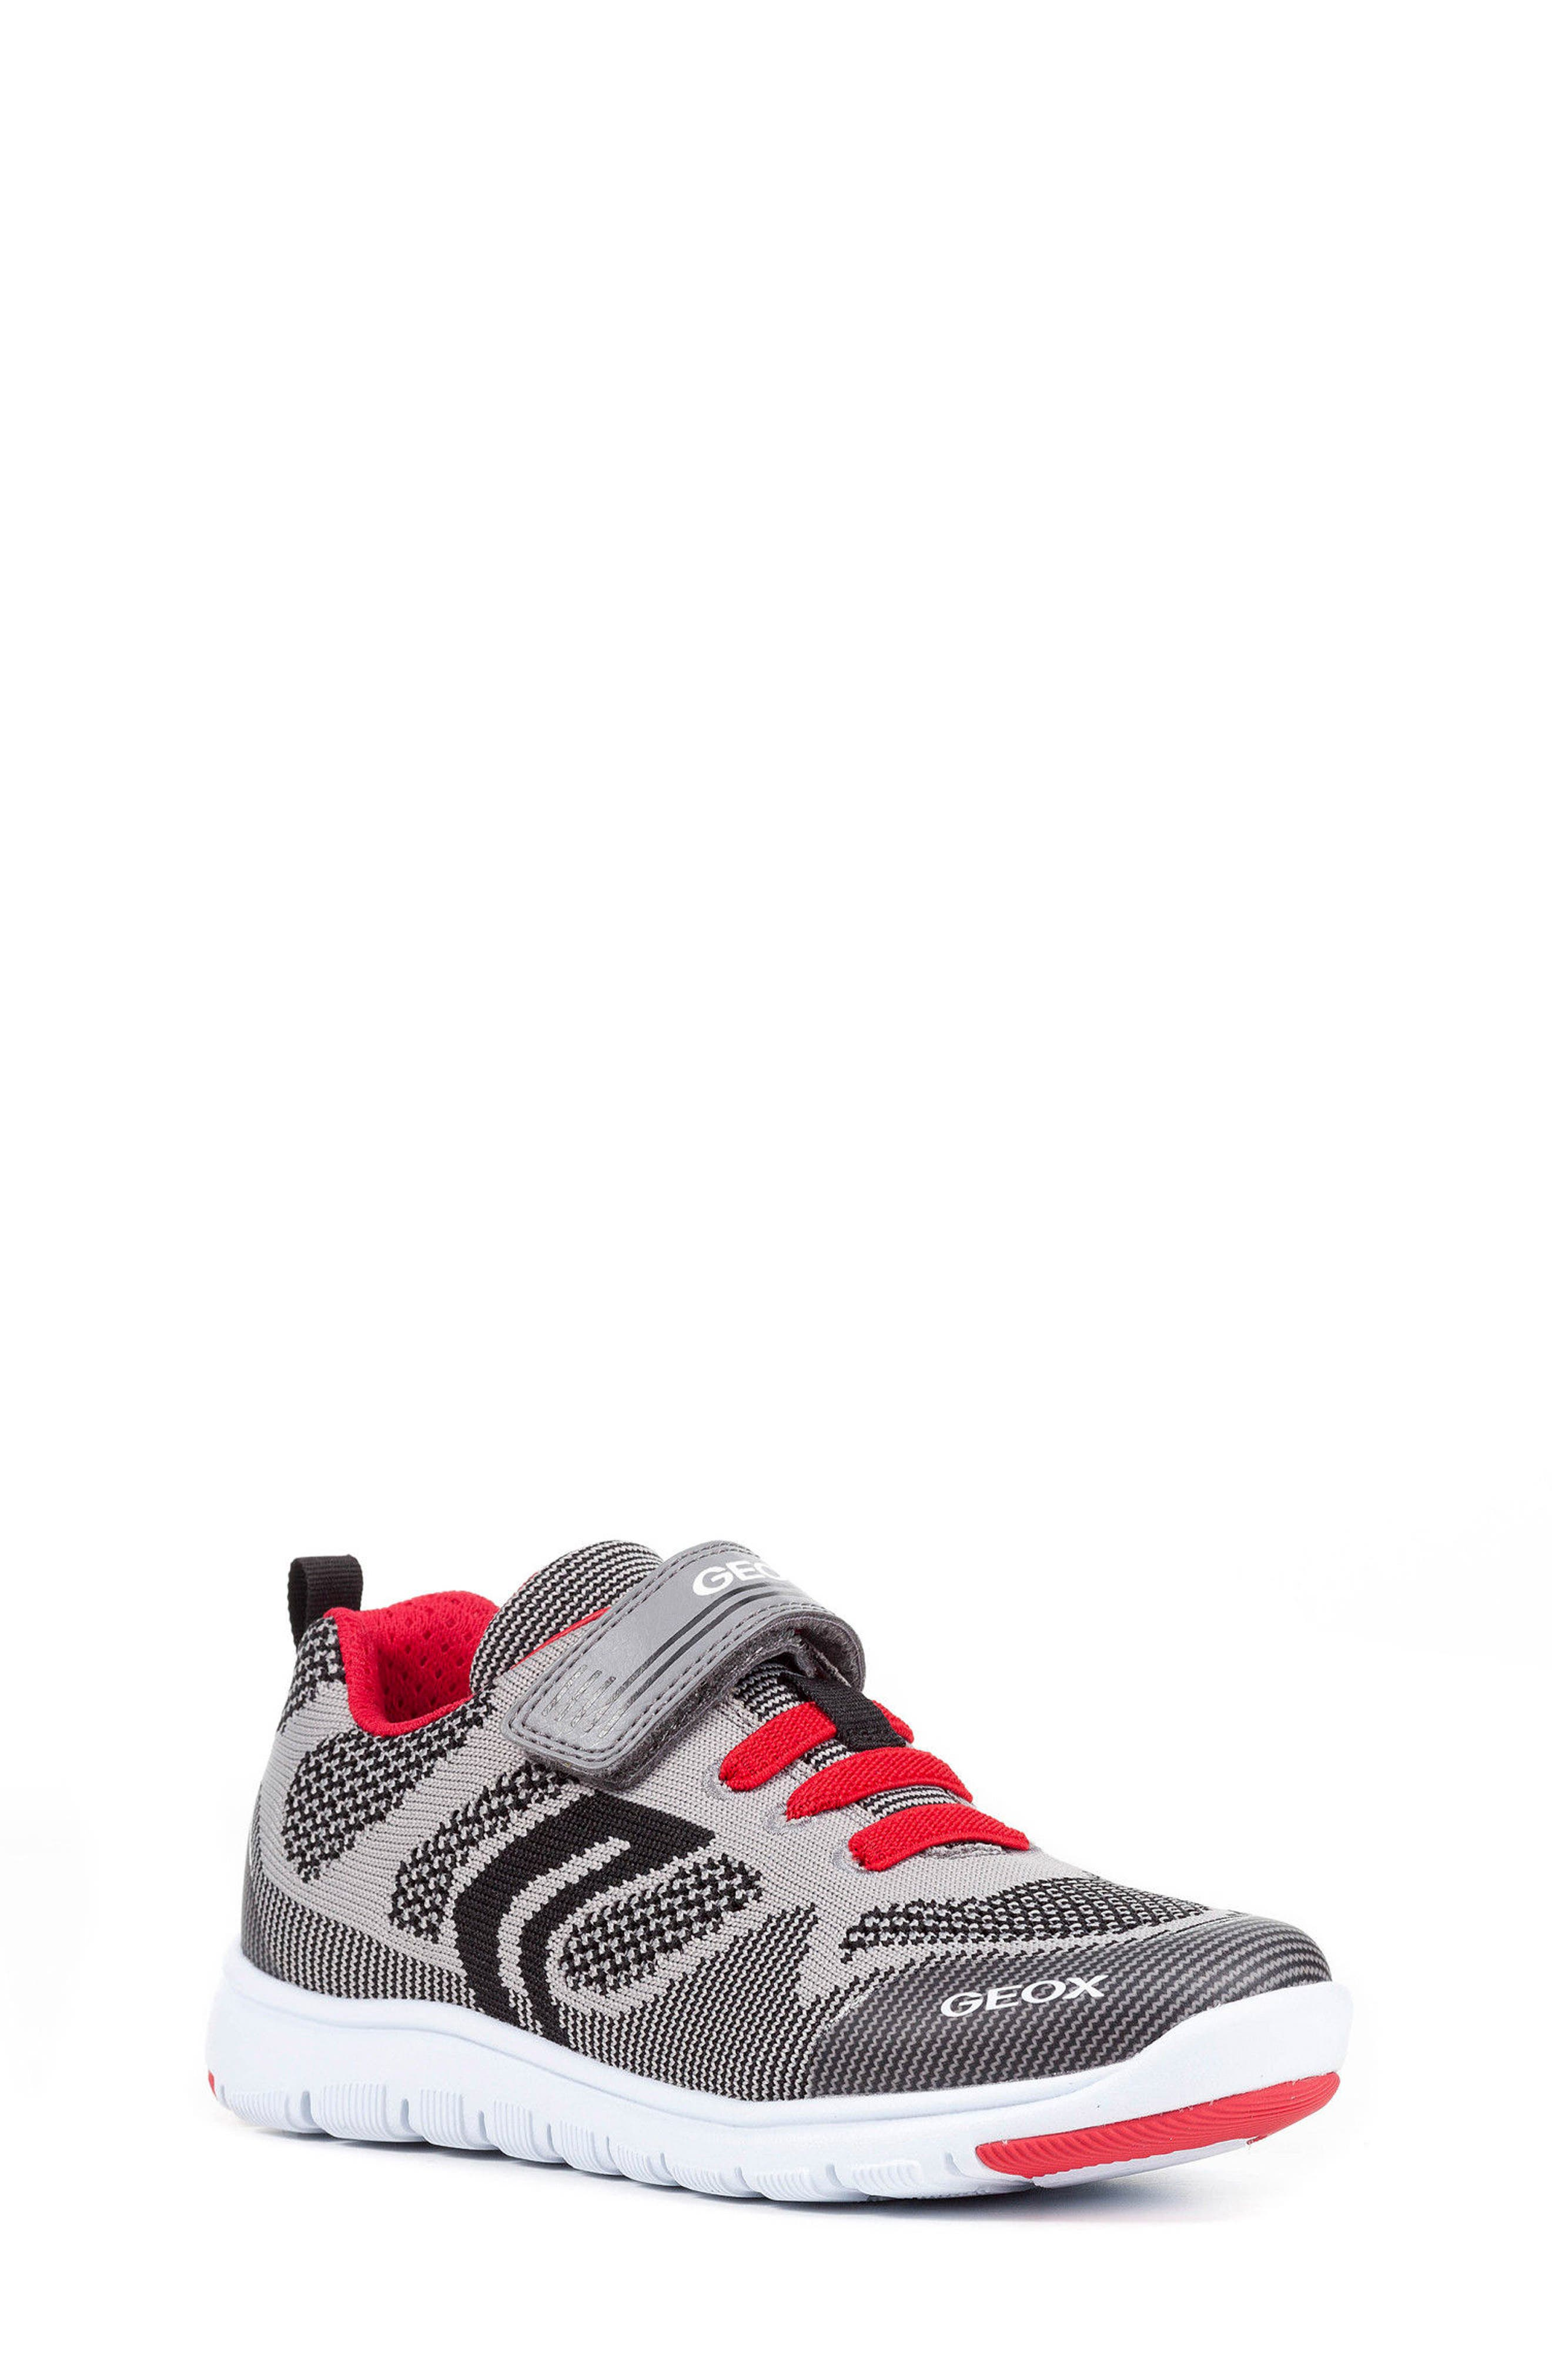 Xunday Low Top Woven Sneaker,                         Main,                         color, 063